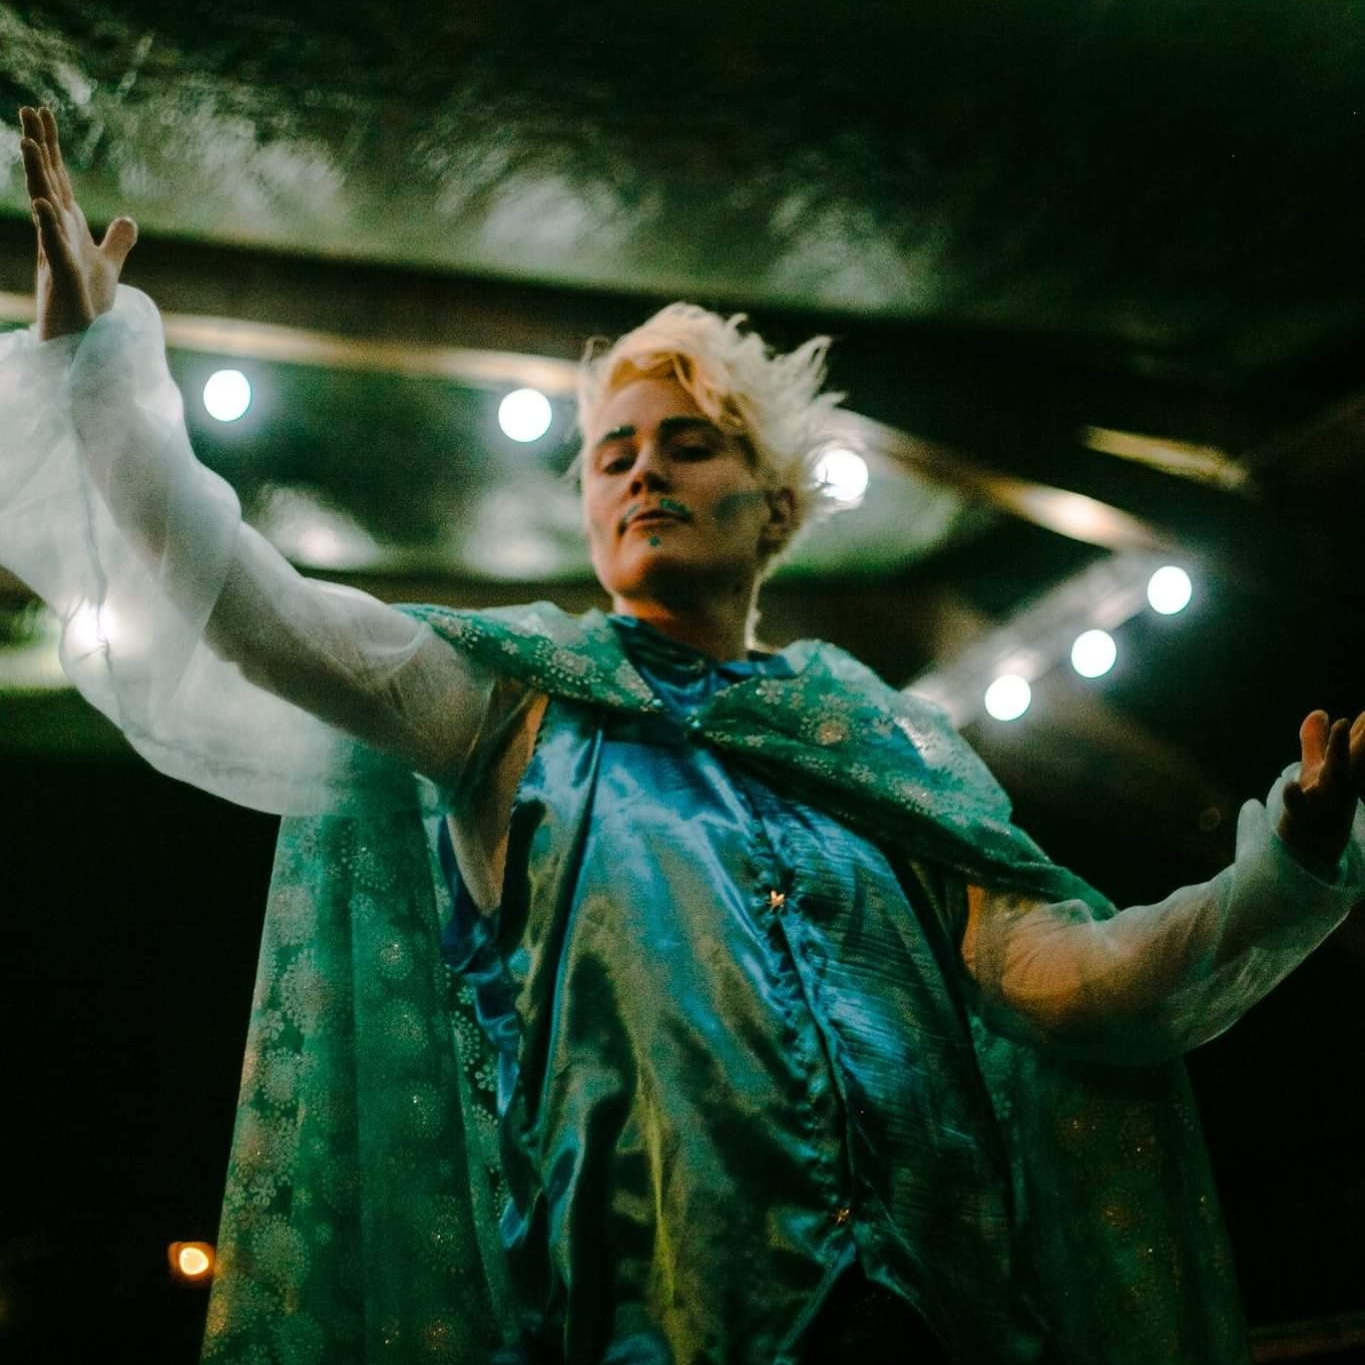 A DRAG QUEEN STORY TIME GUEST BLOG - Authored by Kurt Sovain of DQST.When I think back to that strange little bookworm, who used to read all night by torchlight under the covers, I wonder how much more welcoming the world would have seemed if I'd known that I wasn't alone.